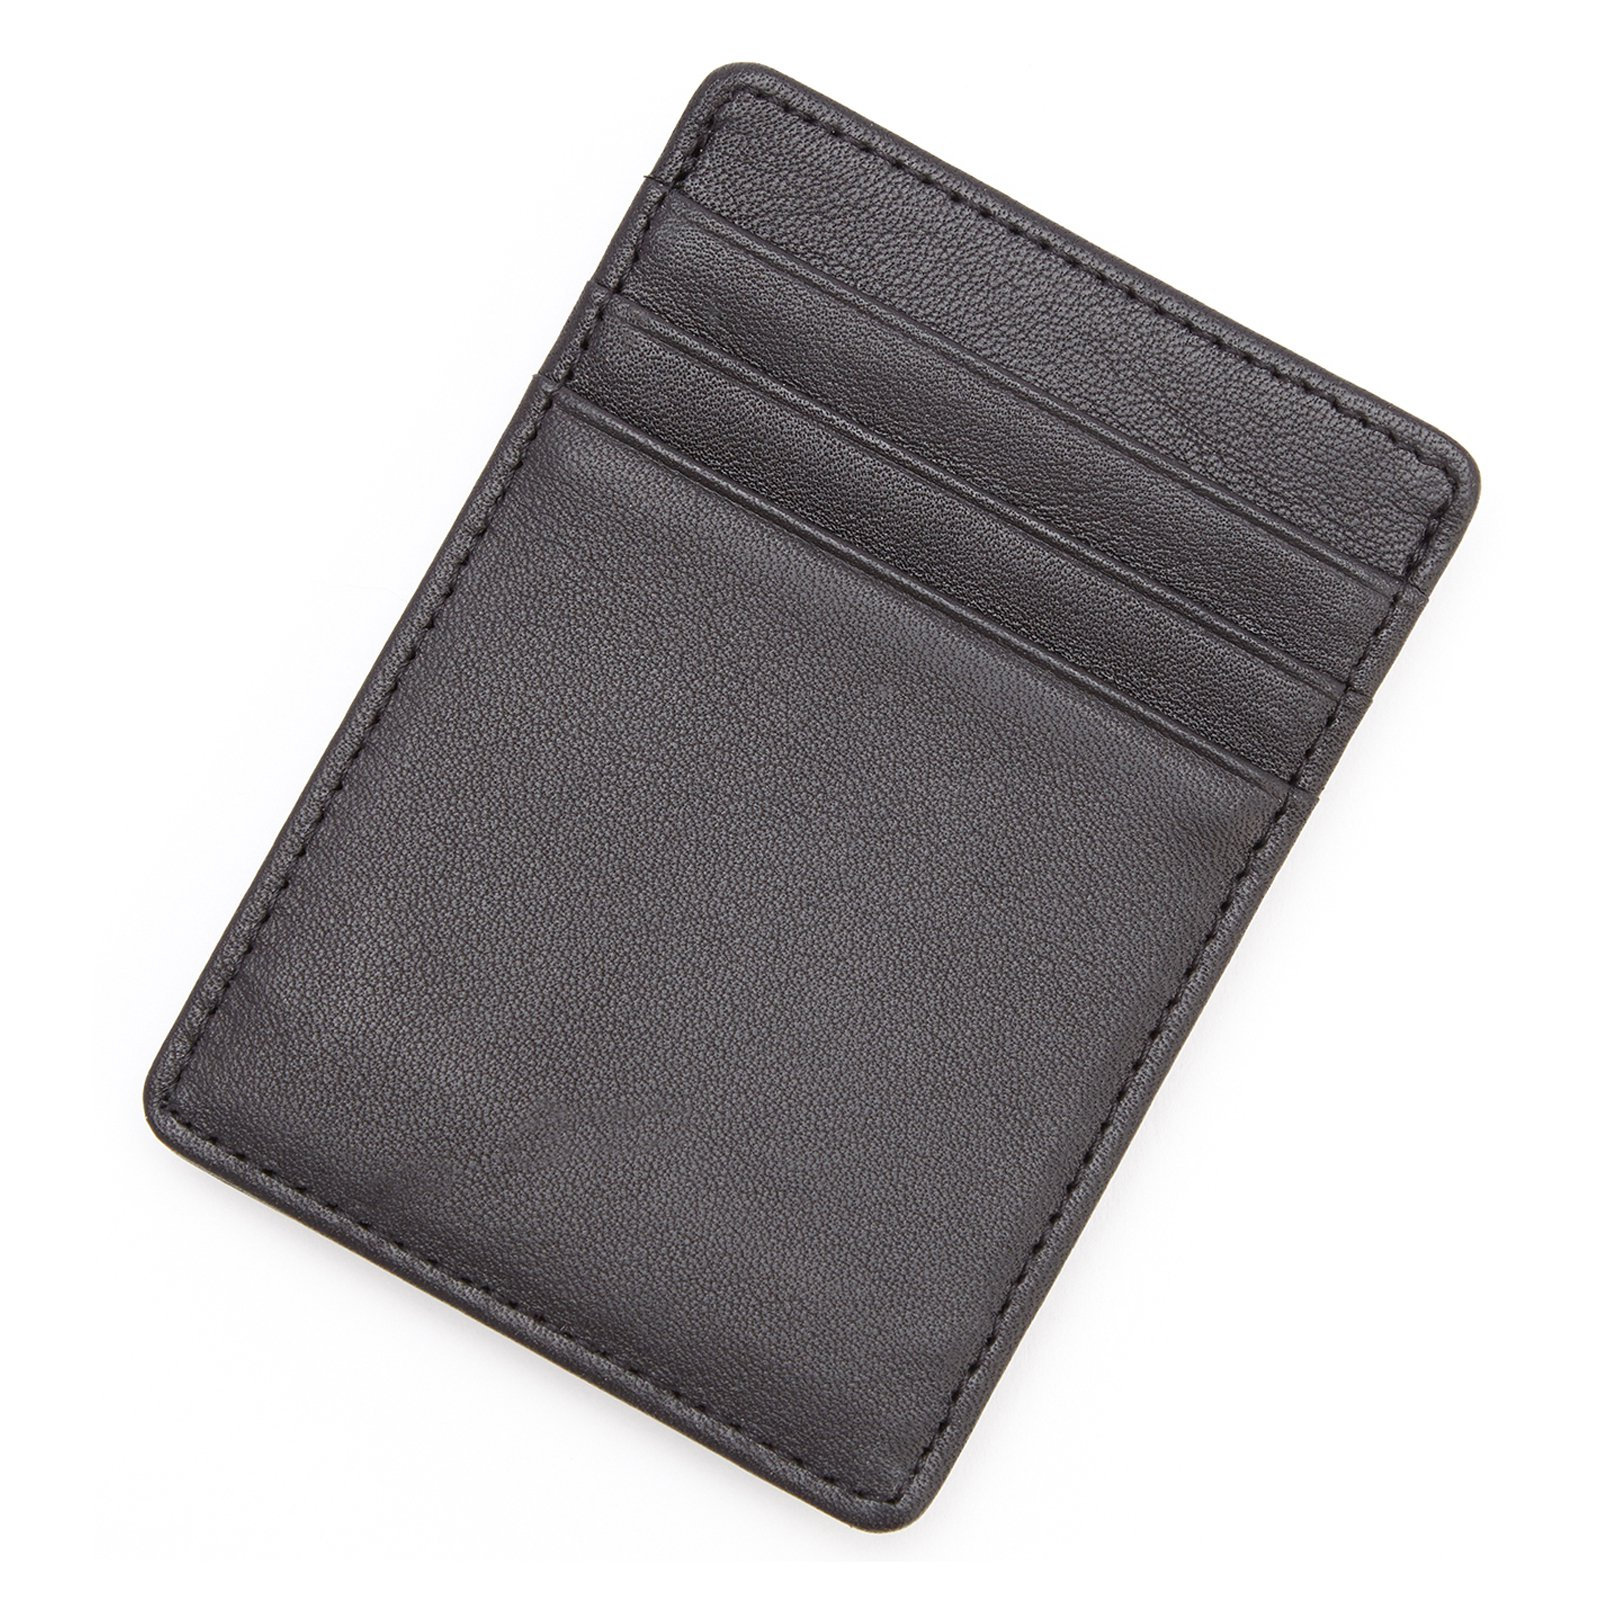 Royce Leather Genuine Leather Slim Magnetic Money Clip Wallet